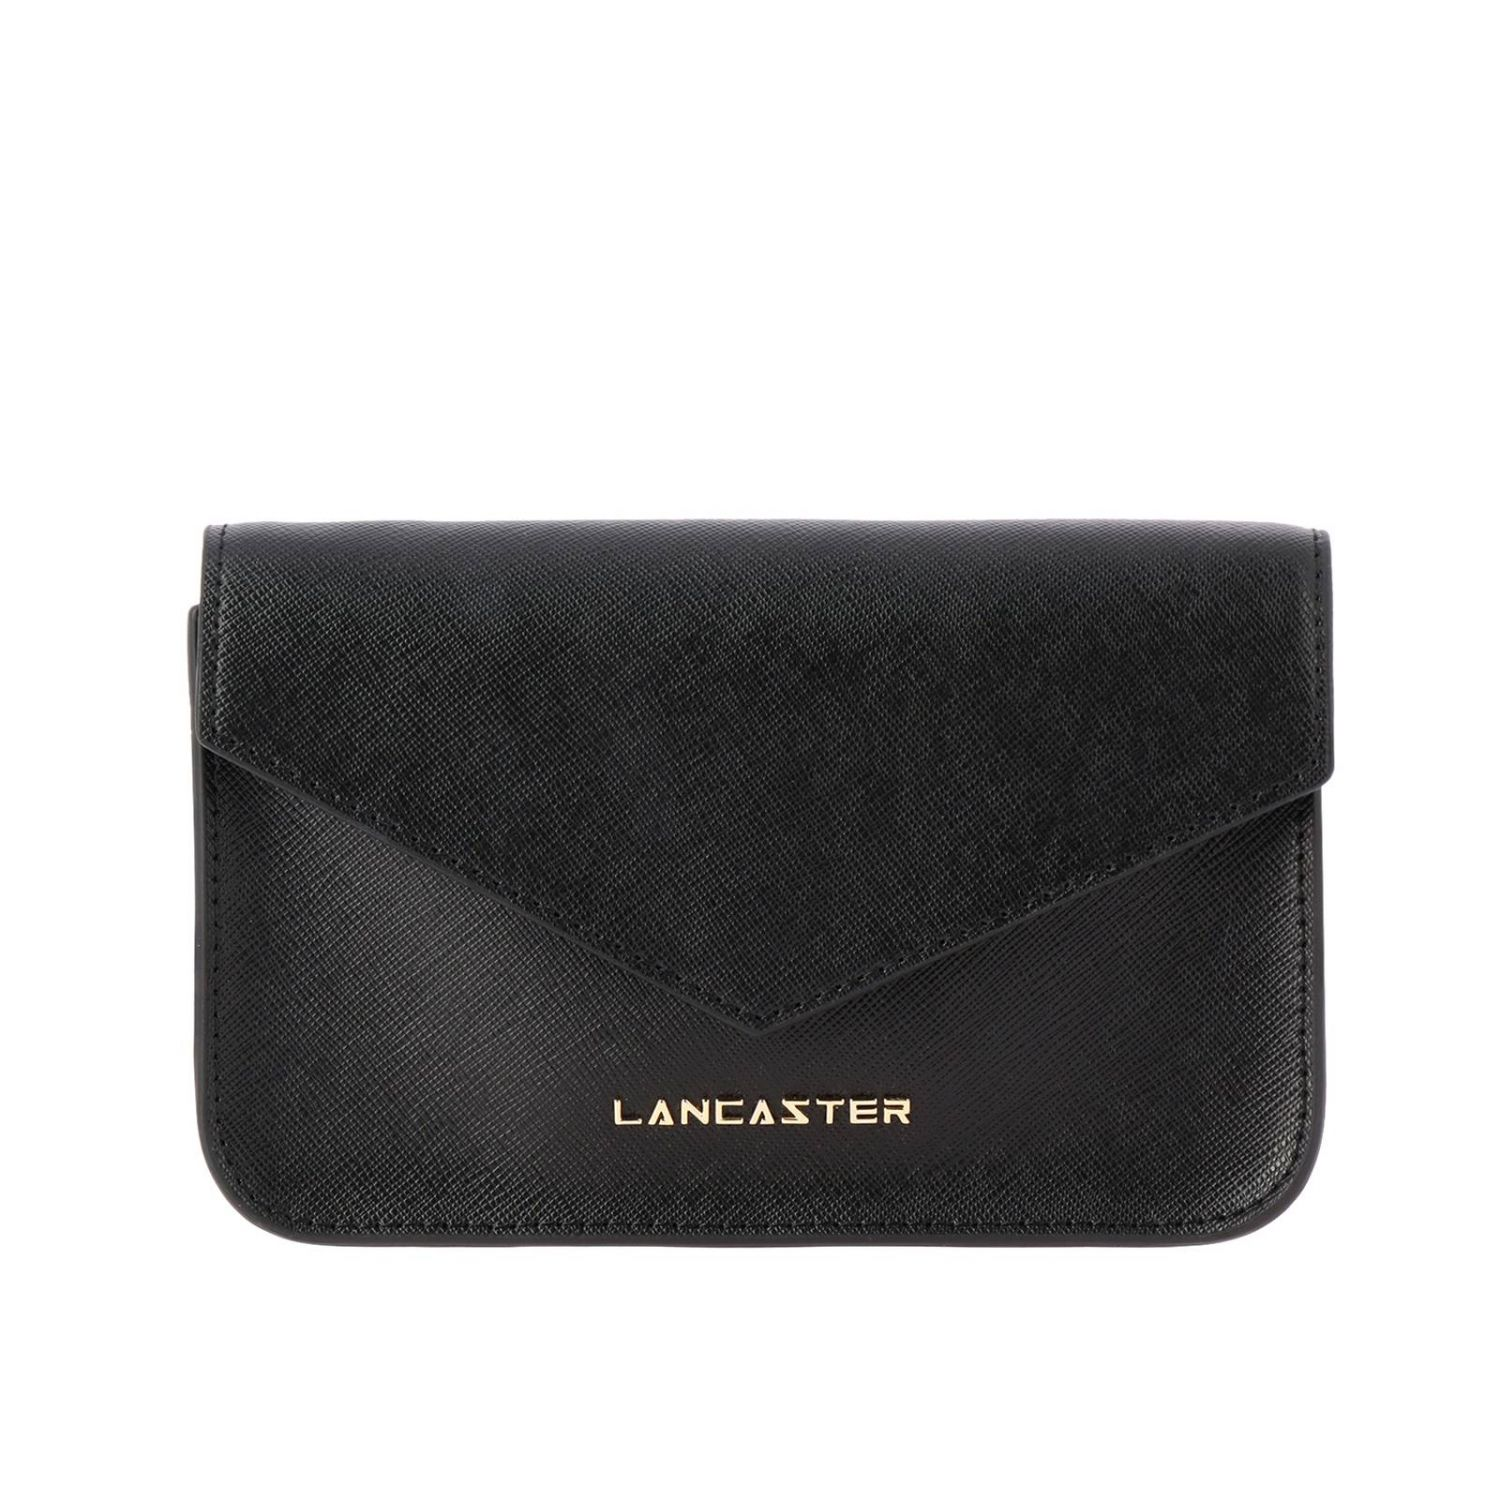 Shoulder bag women Lancaster Paris black 1